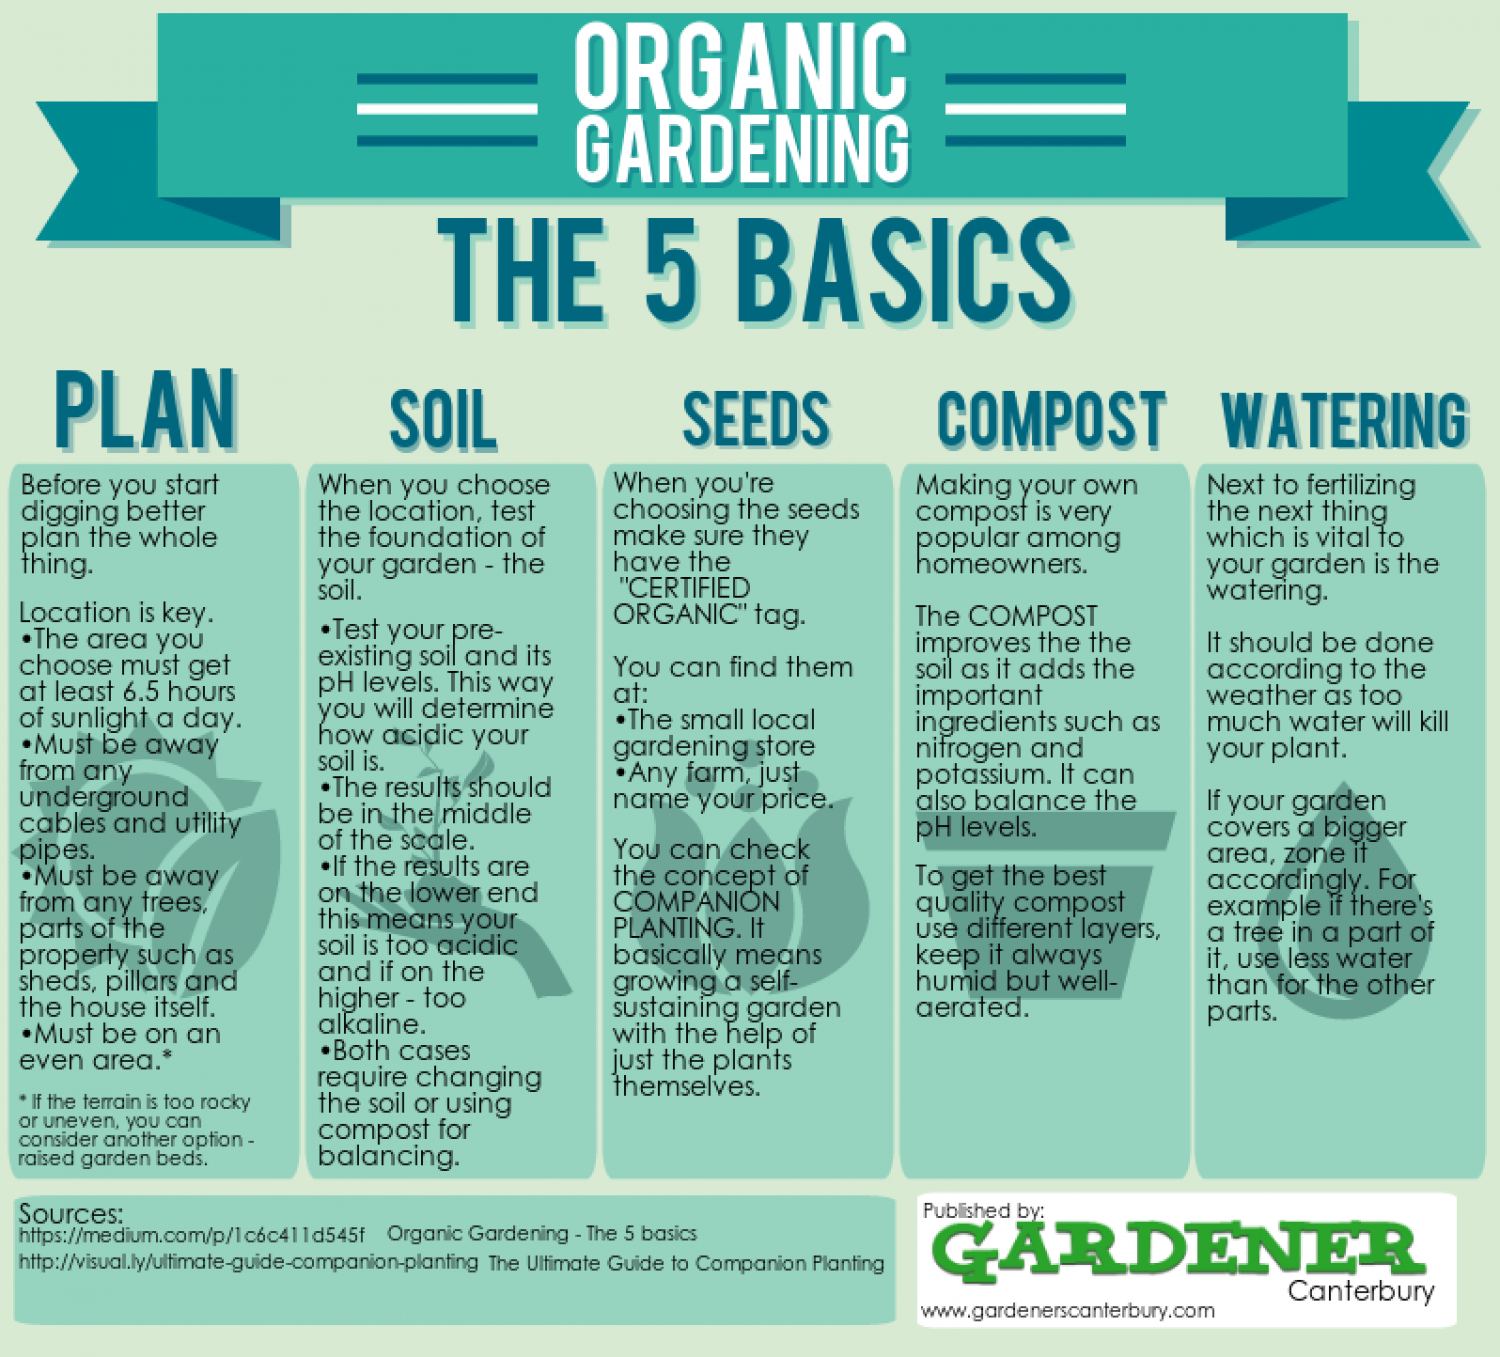 Organic Gardening - The 5 Basics Infographic